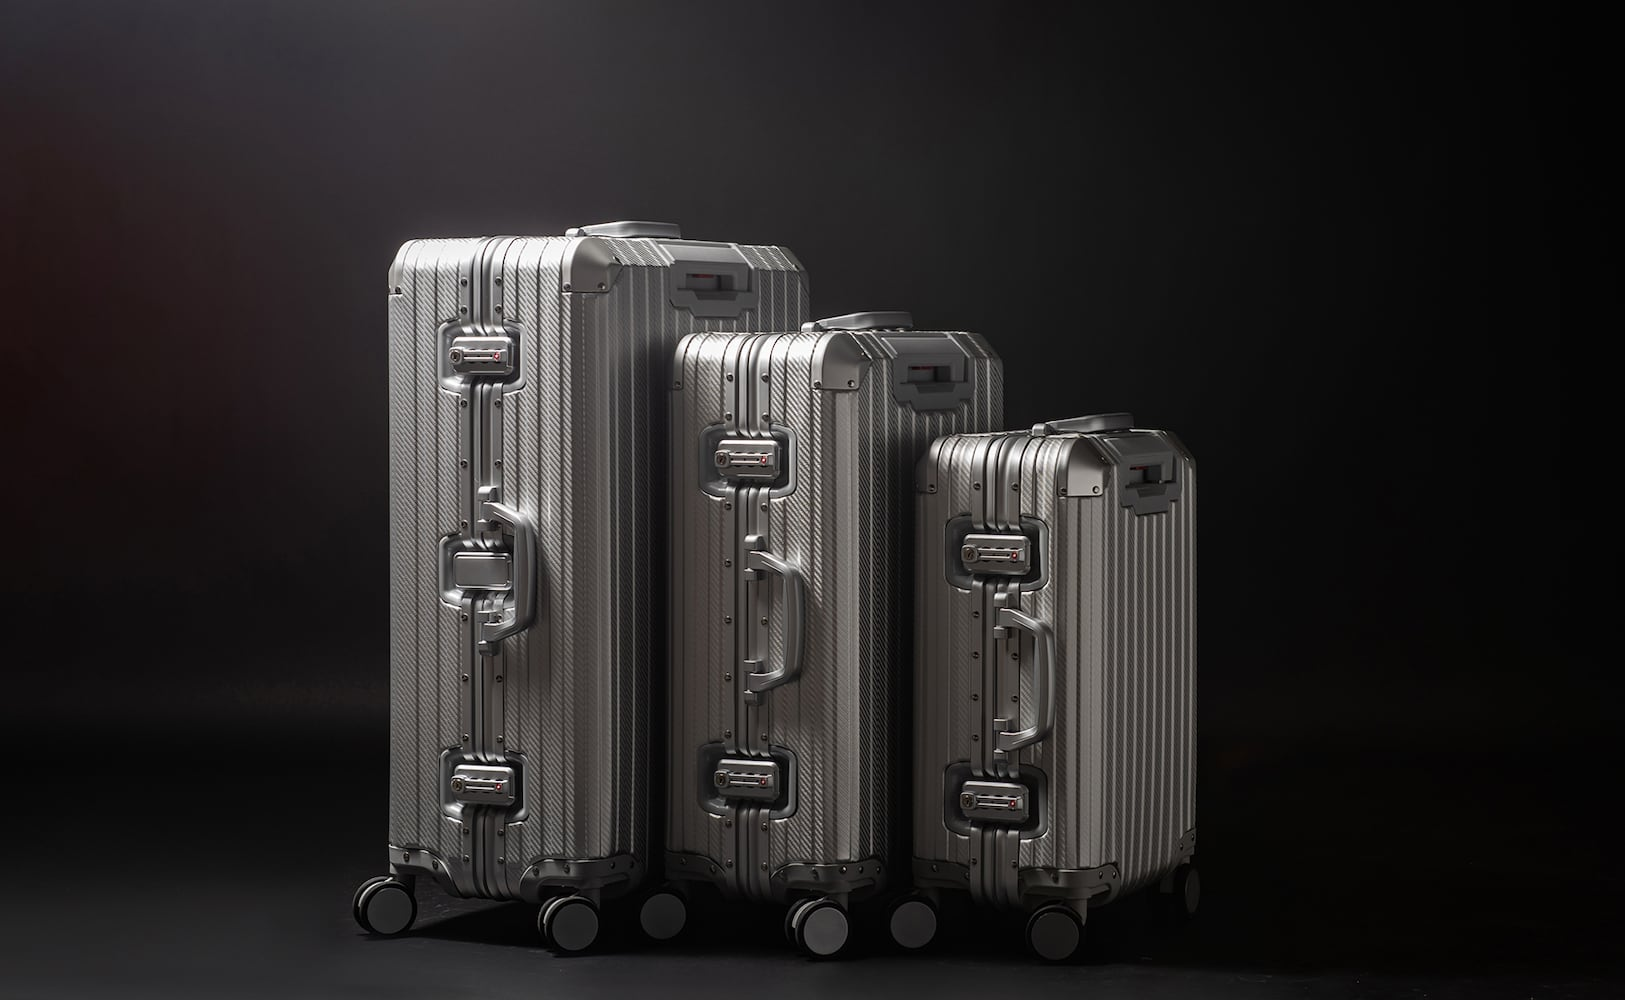 TREK Aluminum Suitcases by MVST Select are luxurious and unbreakable